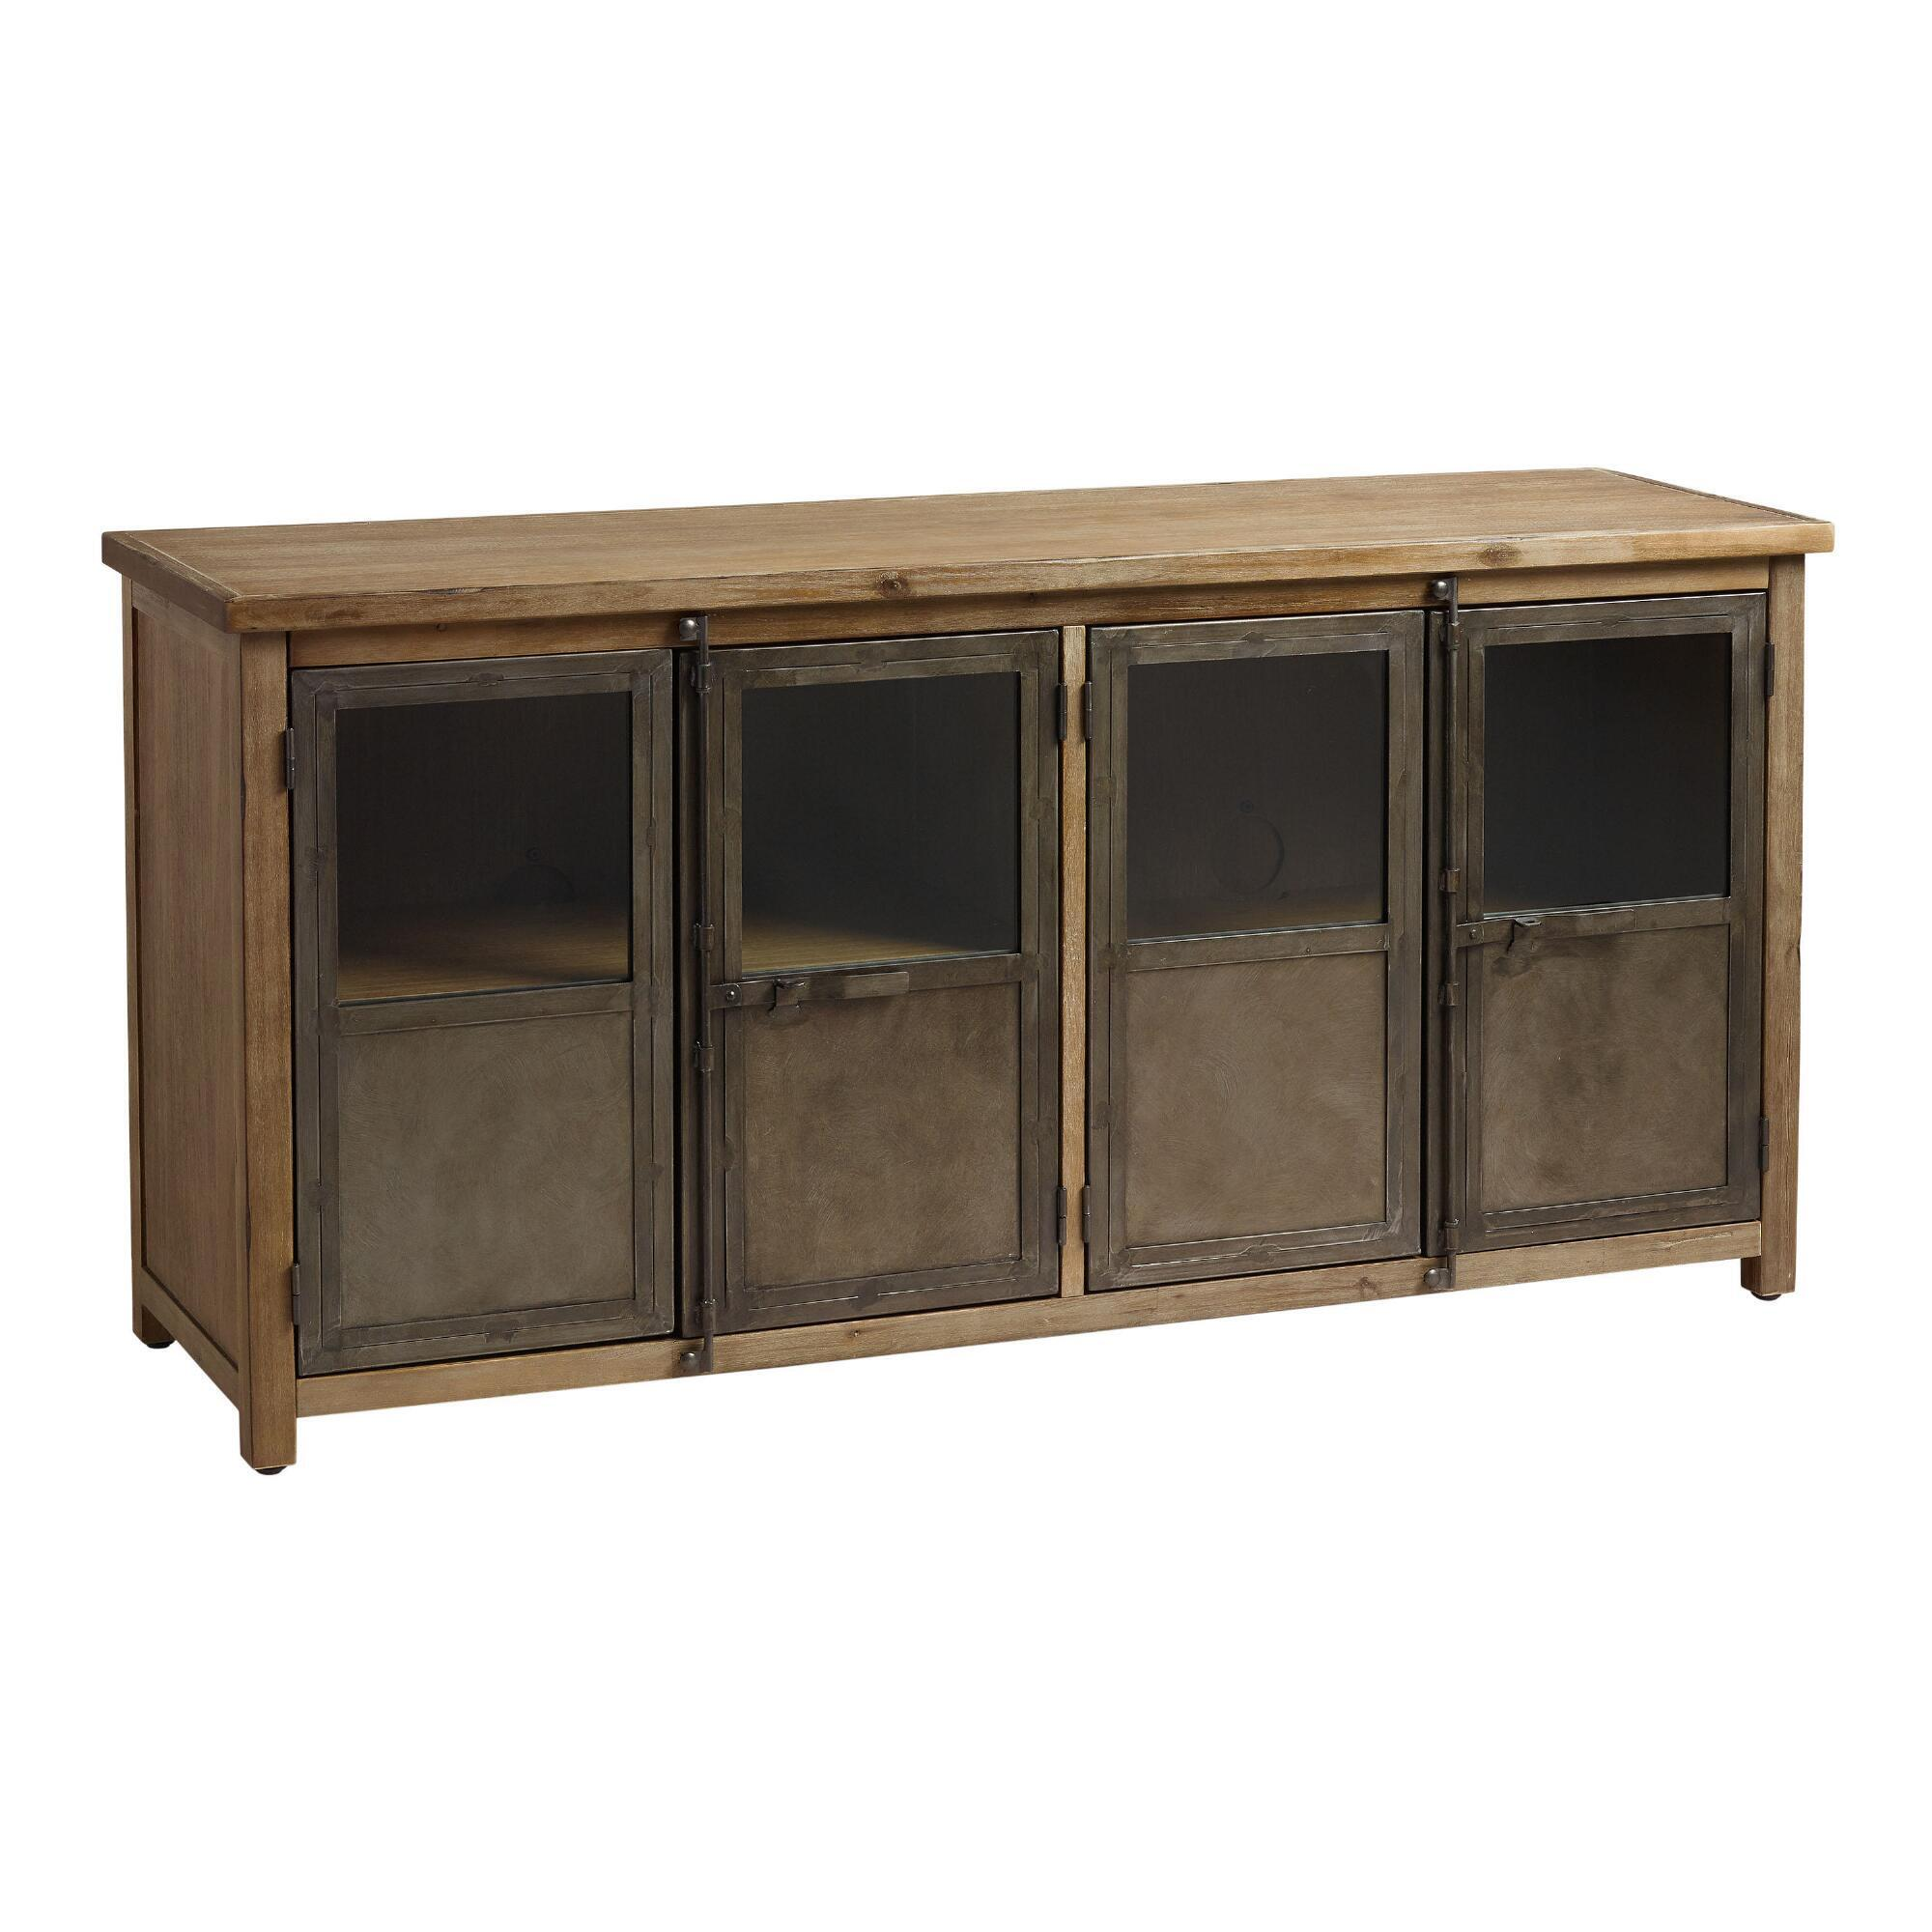 Langley storage cabinet world market for Tv media storage cabinet